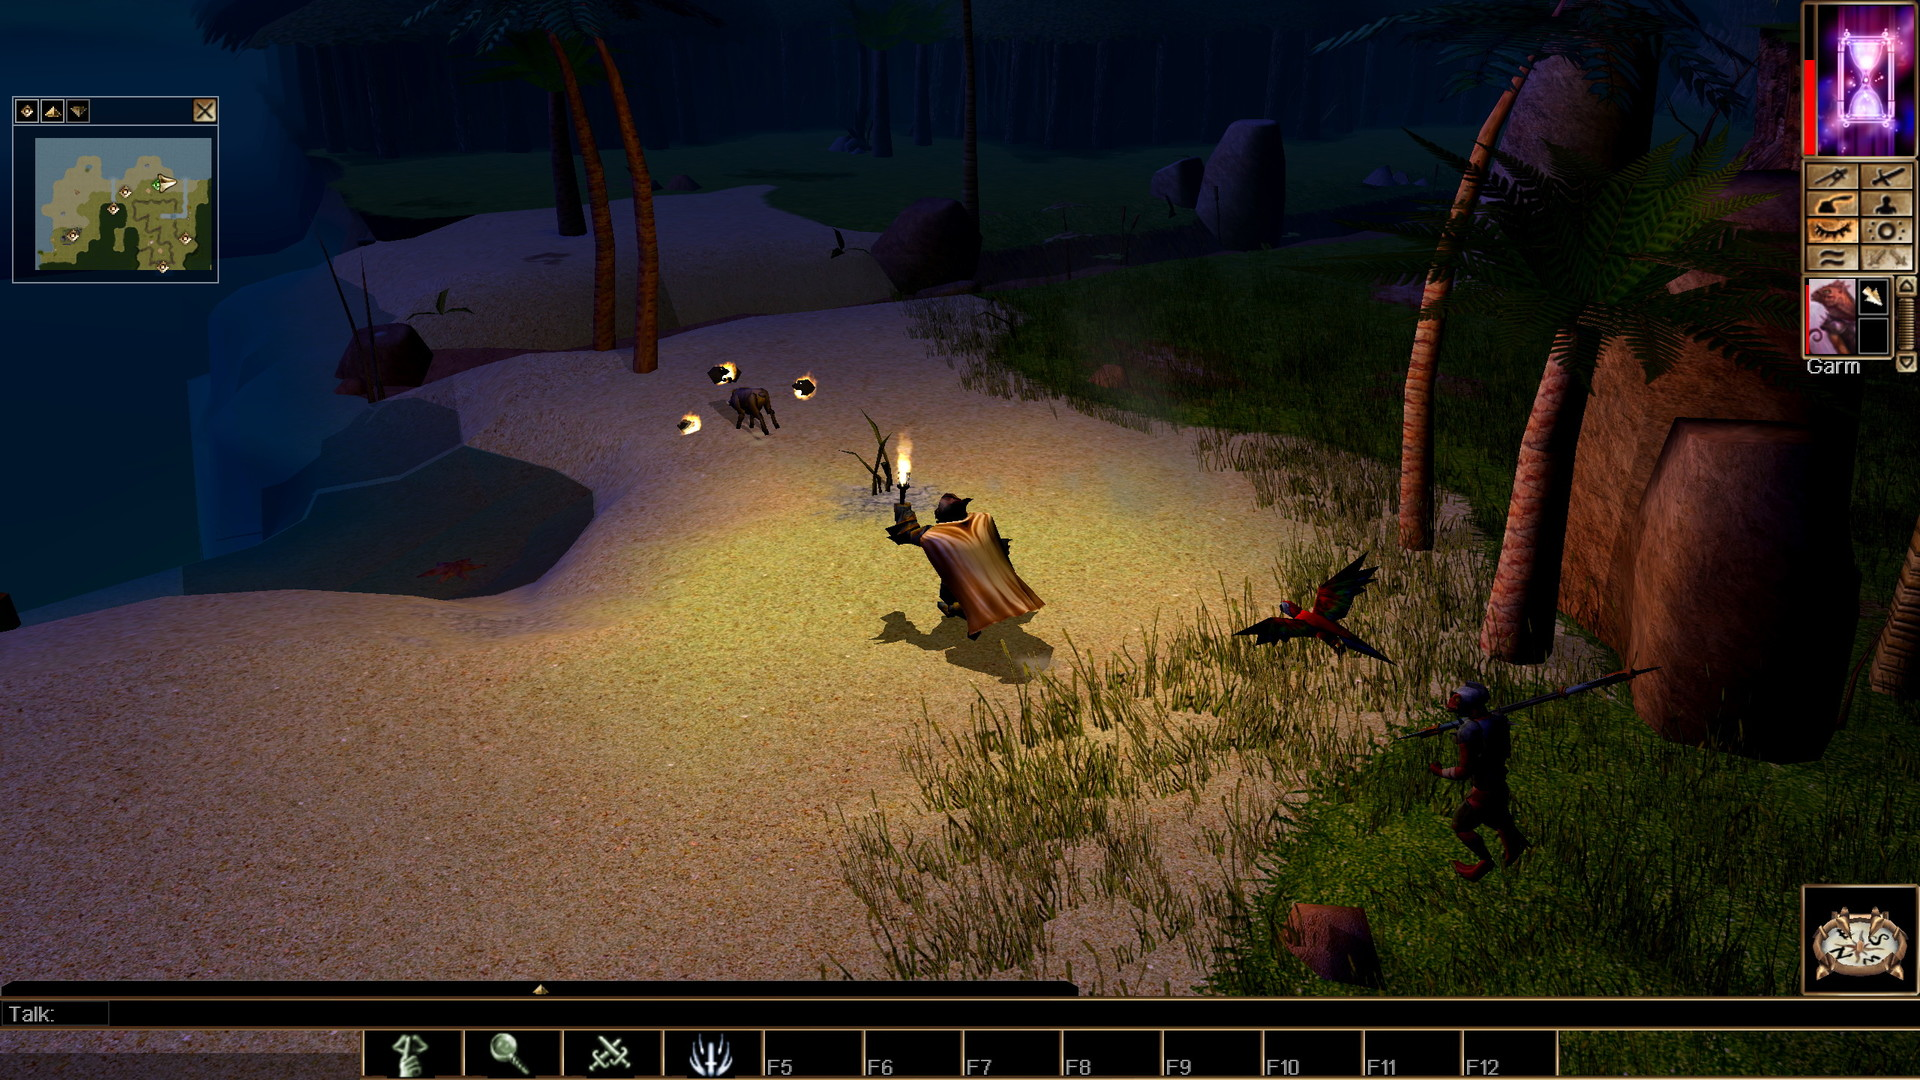 Neverwinter nights: pirates of the sword coast reviews